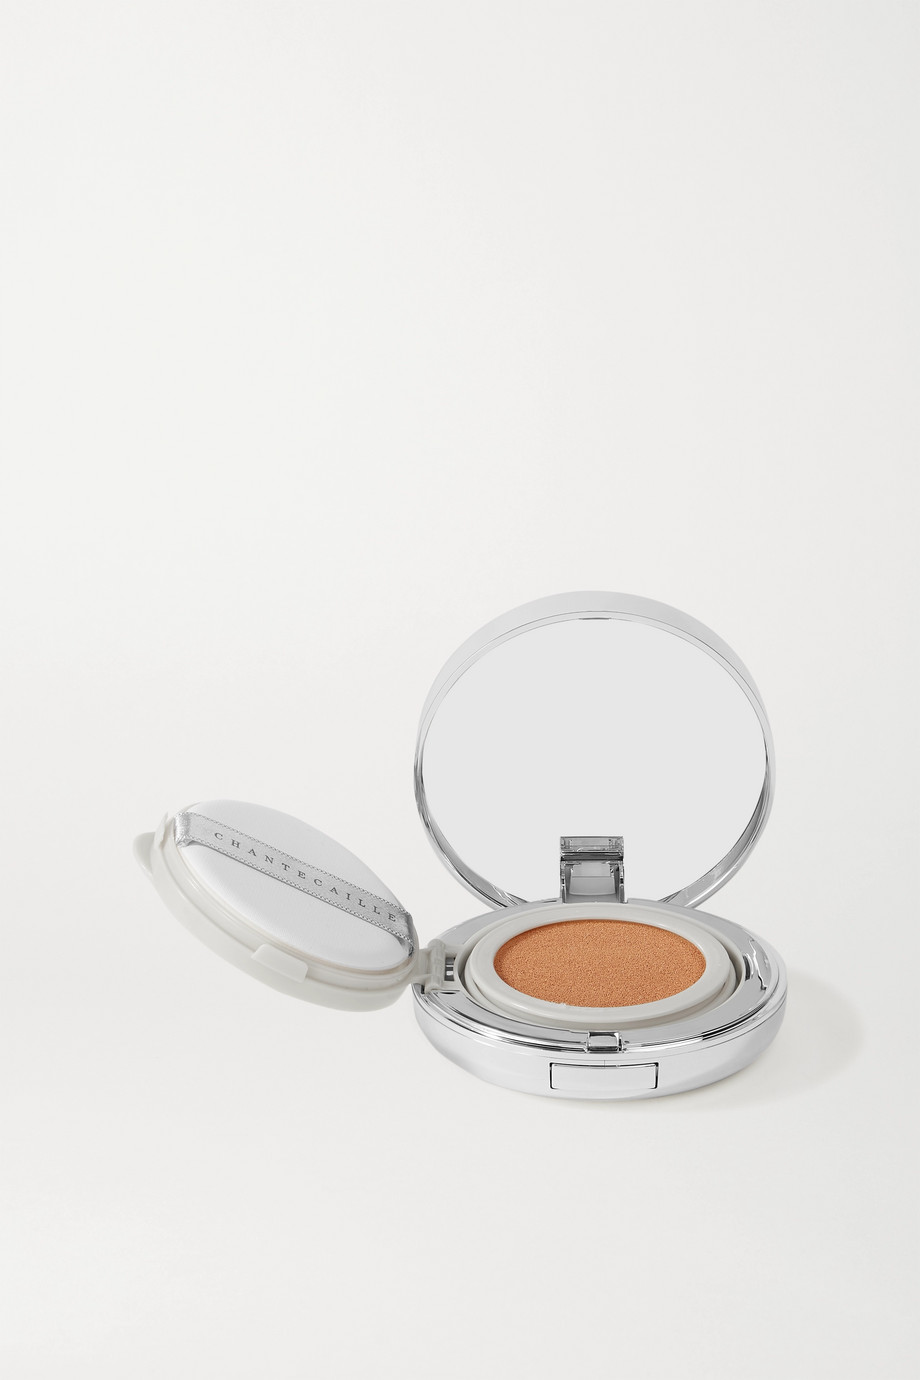 Chantecaille Future Skin Cushion Skincare Foundation - Vanilla